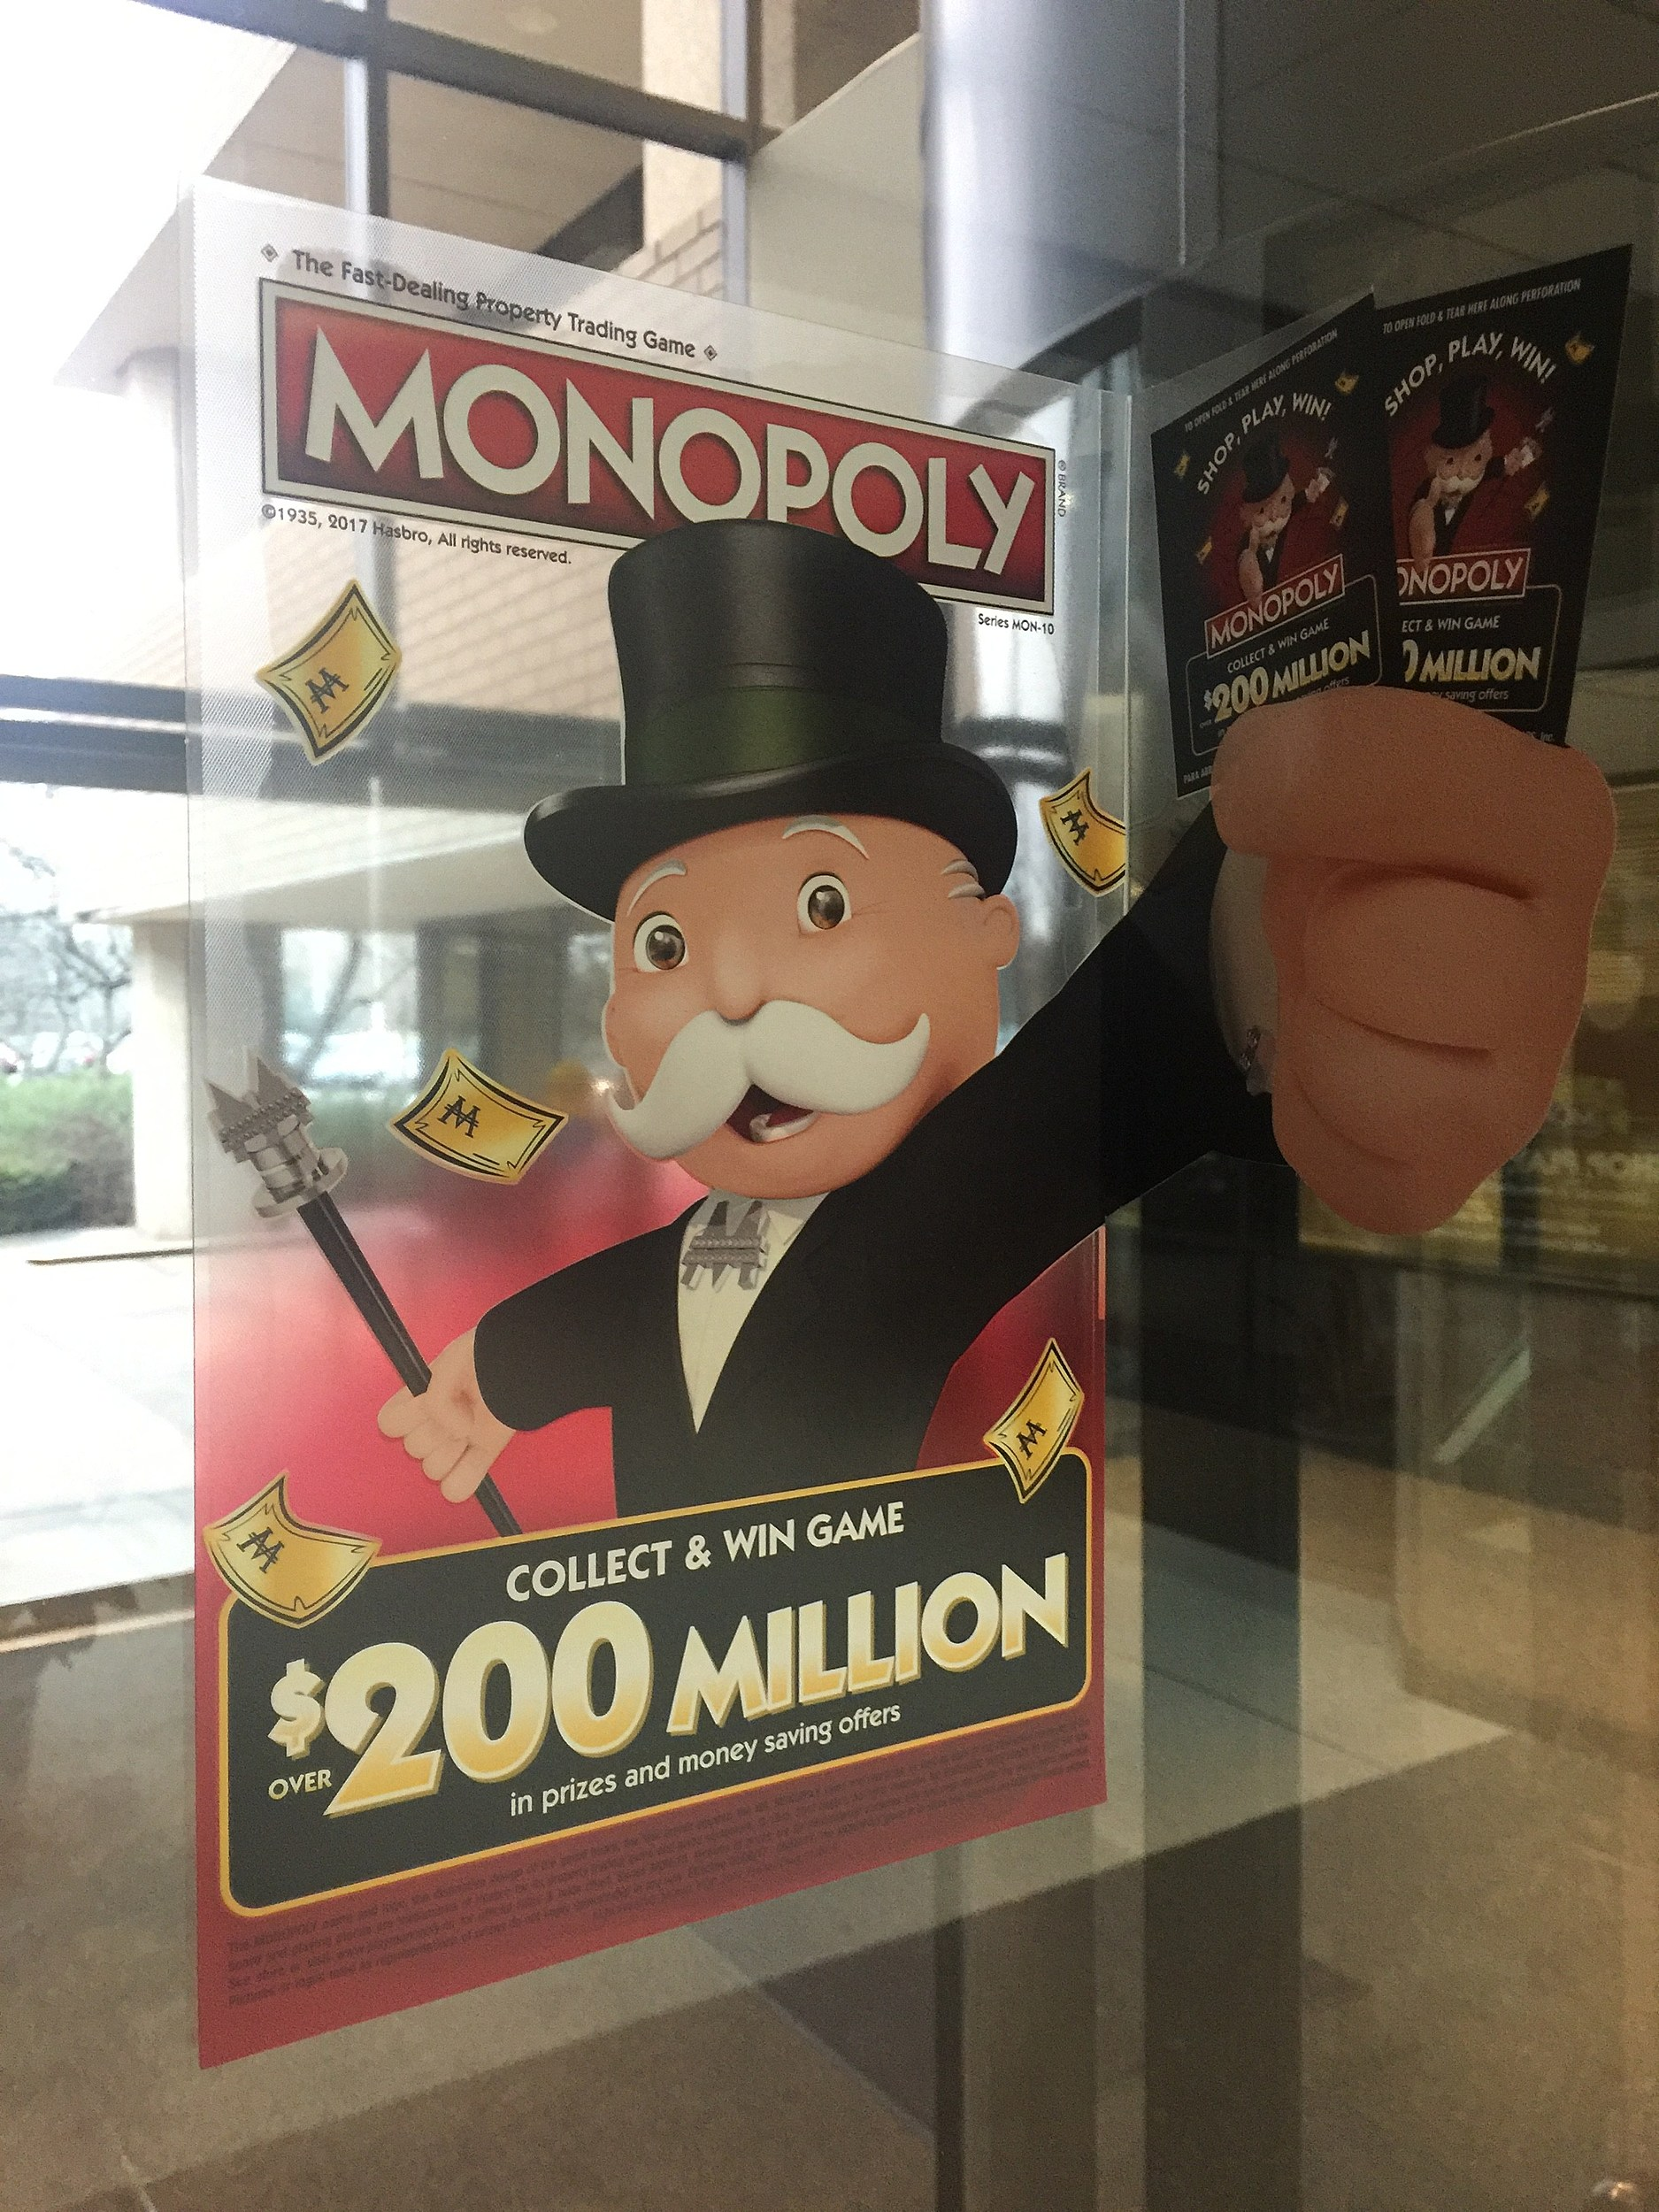 Monopoly window